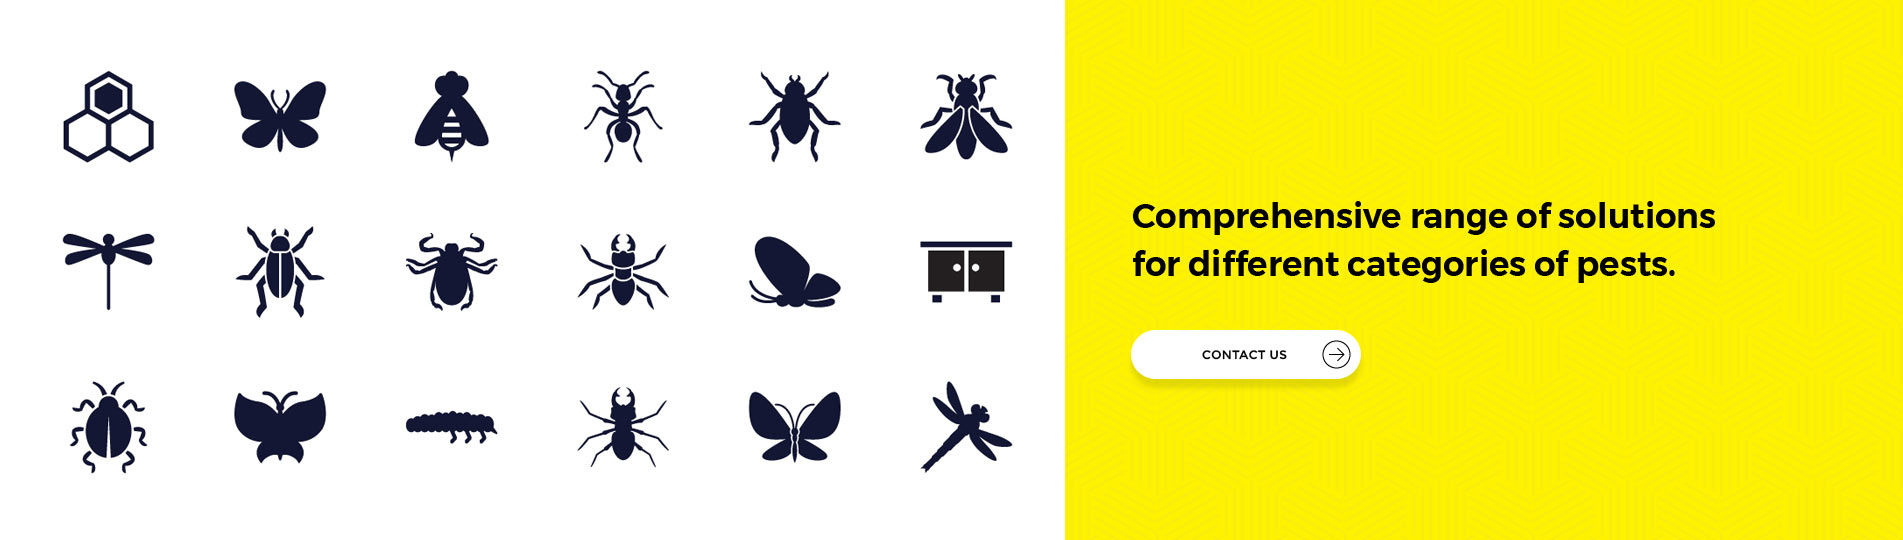 Best Commercial Pest Control Services Near Me